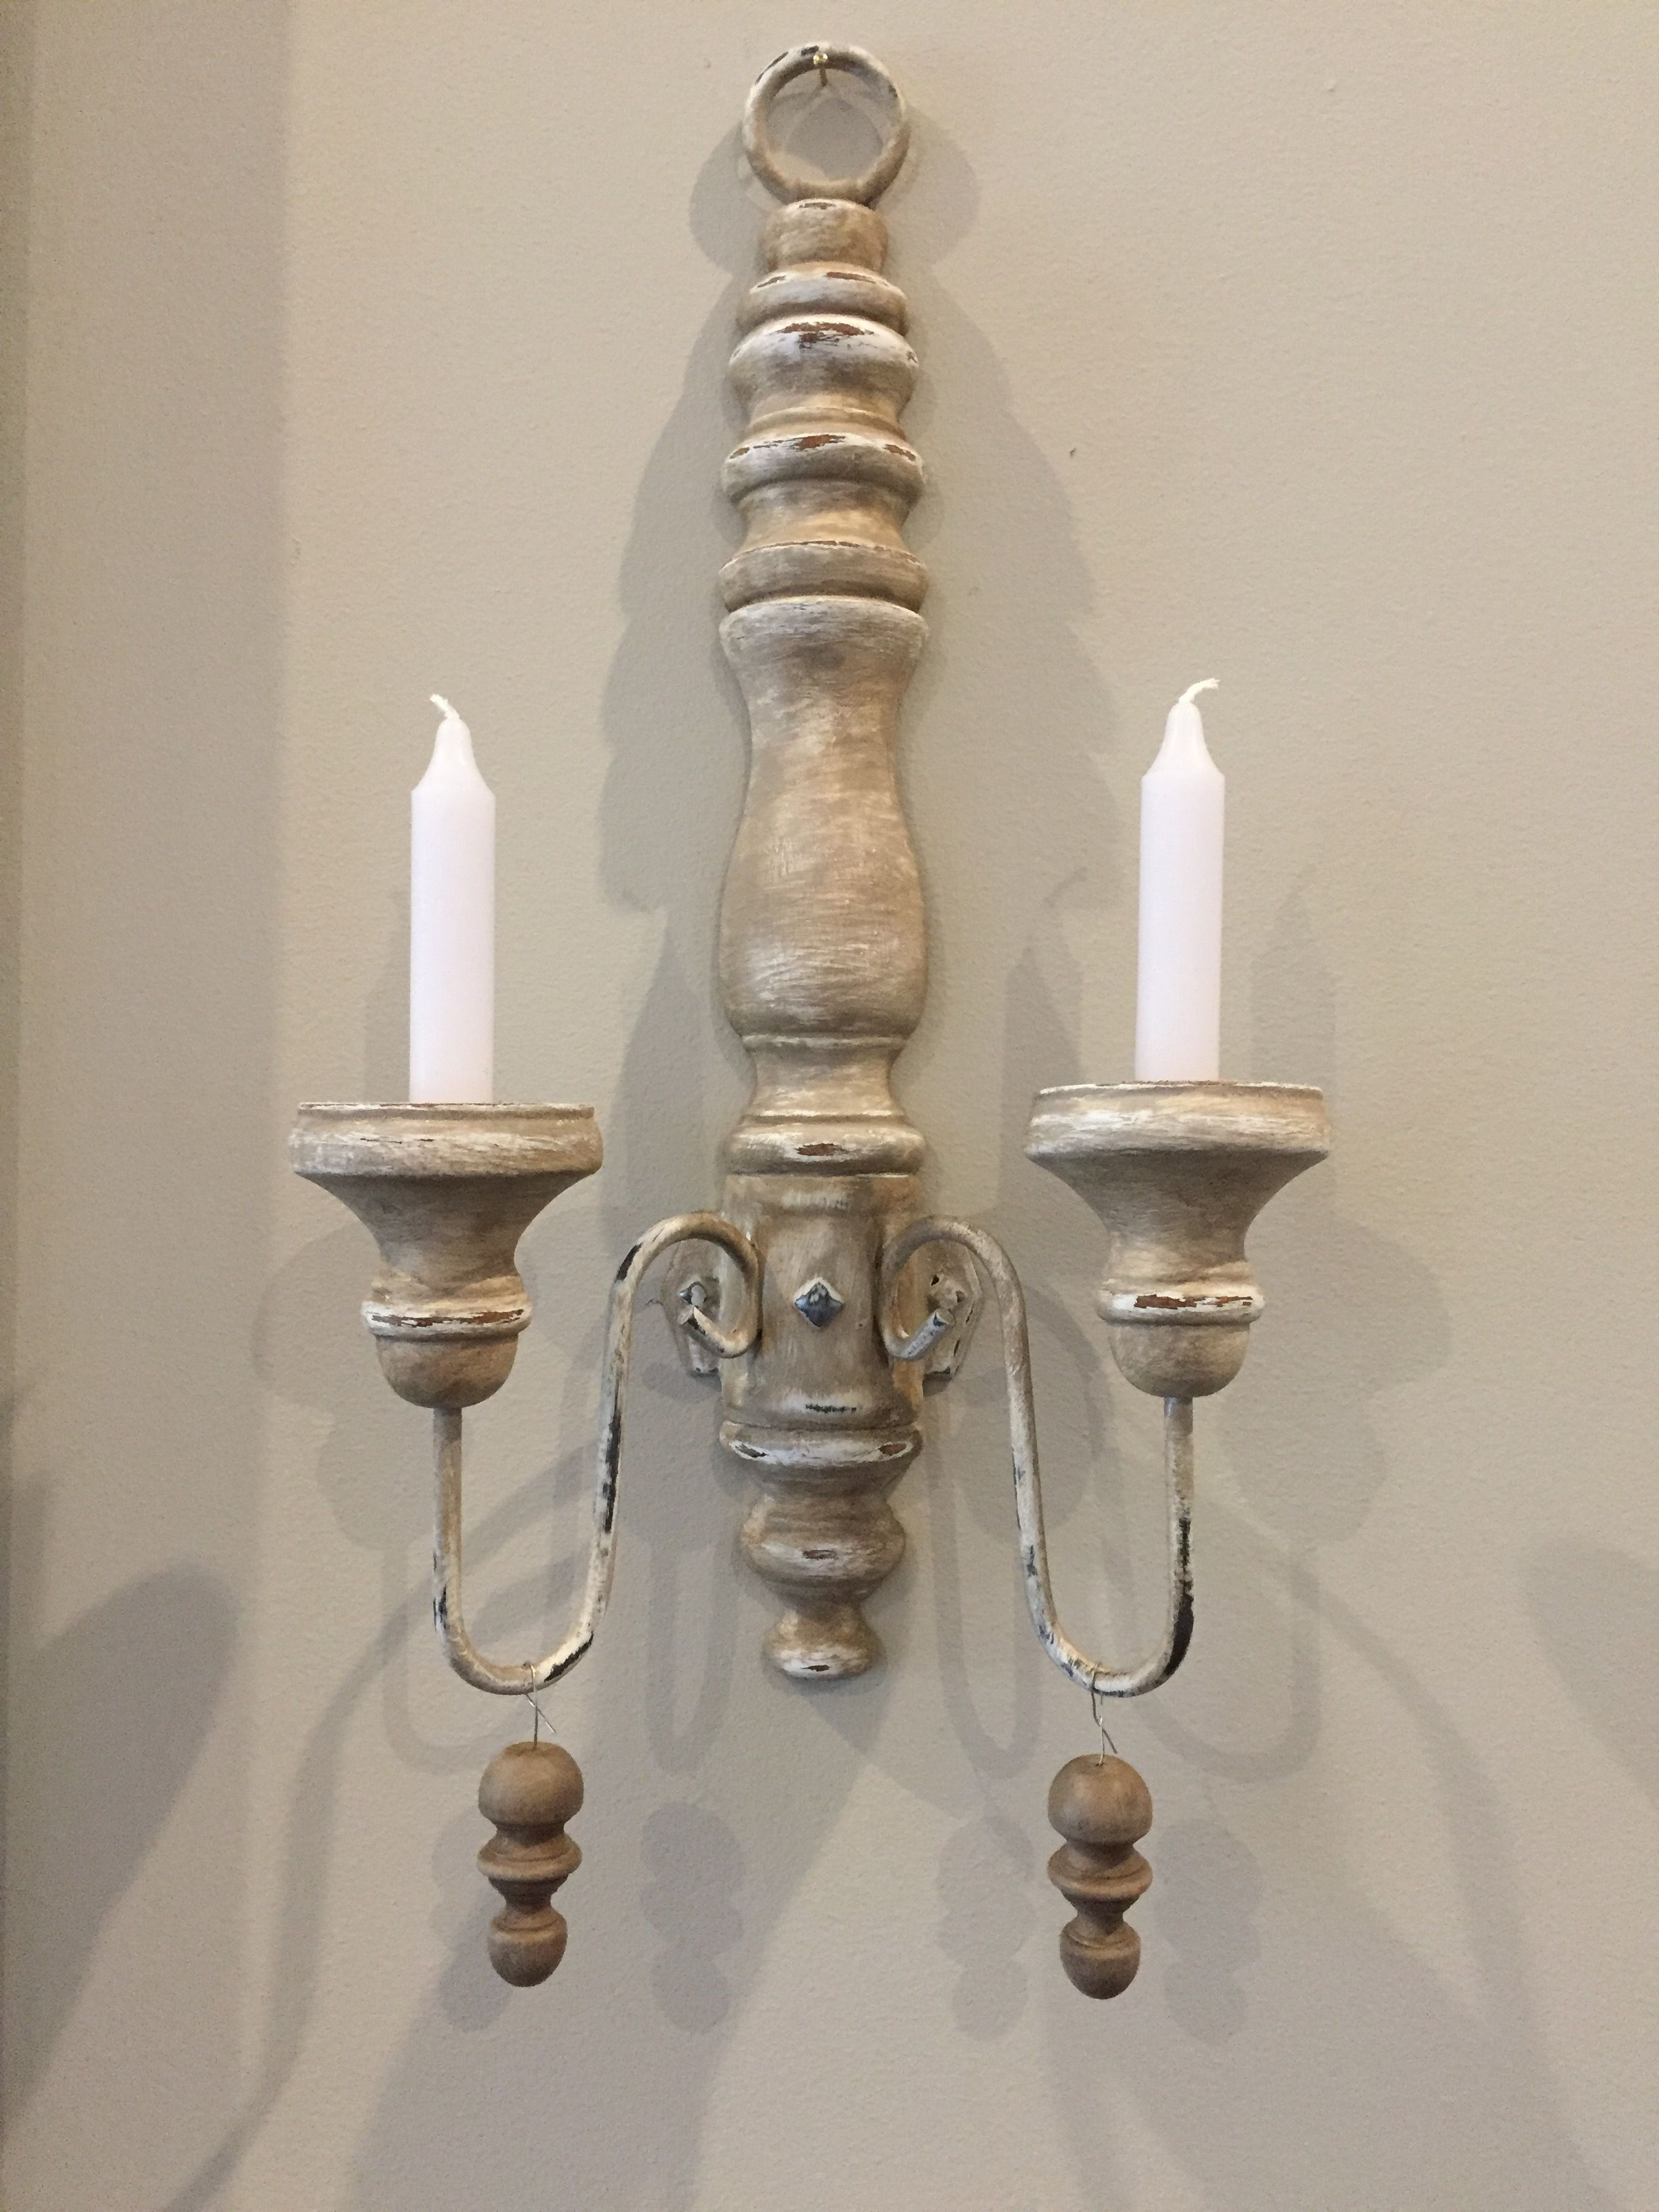 French Inspired Candle Wall Sconce Diy D E C O R A C C E